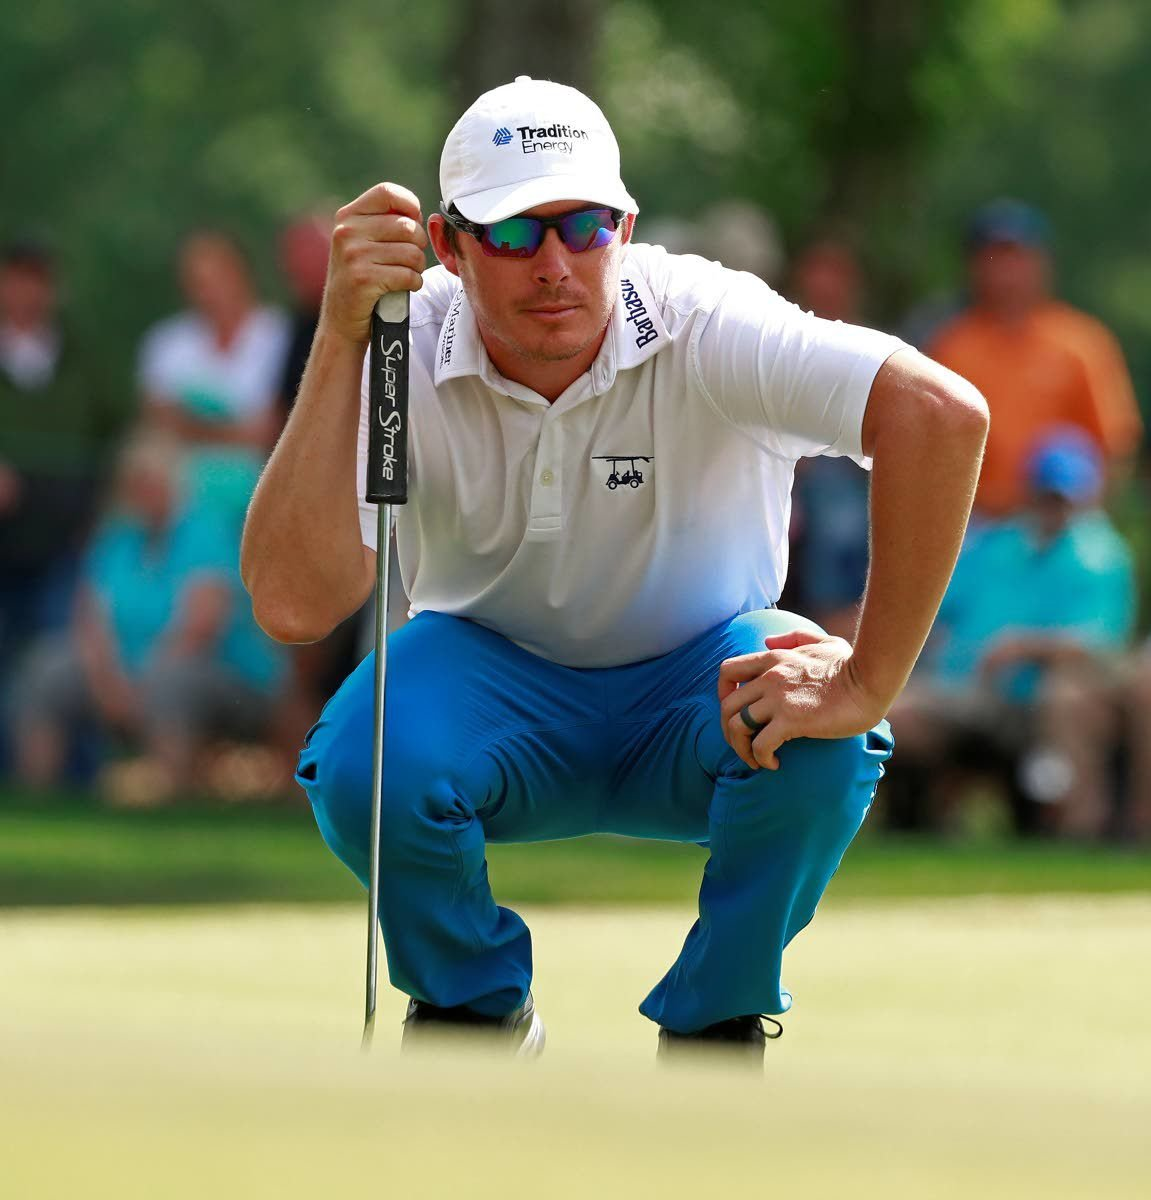 Merritt ties course record for lead at Northern Trust